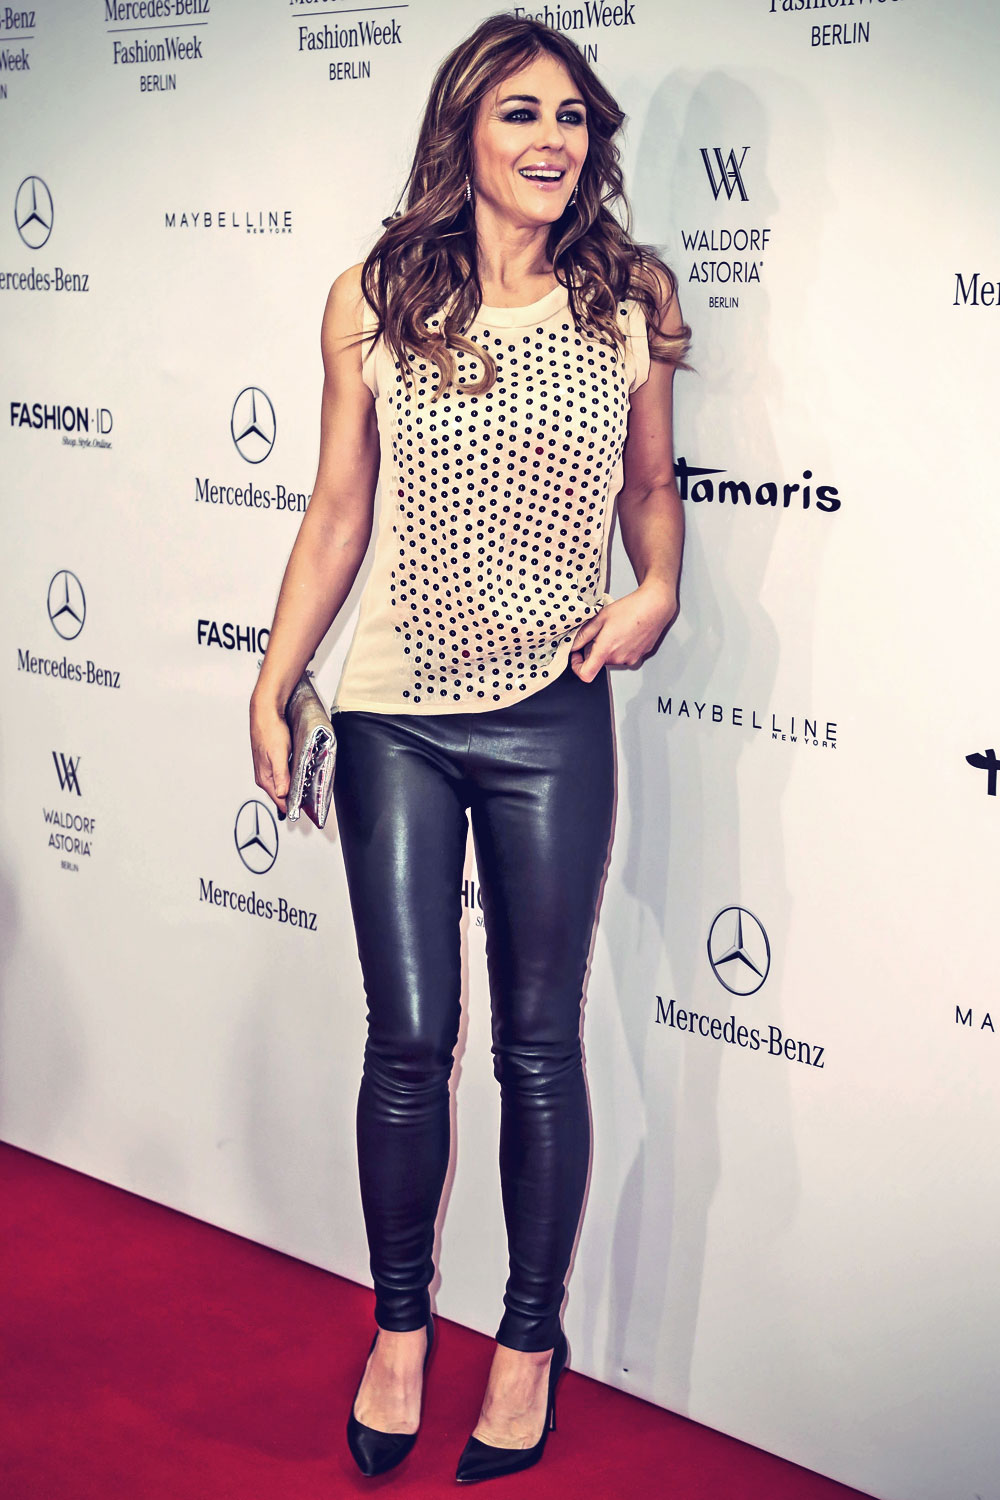 Elizabeth Hurley attends Marc Cain show during Mercedes-Benz Fashion Week